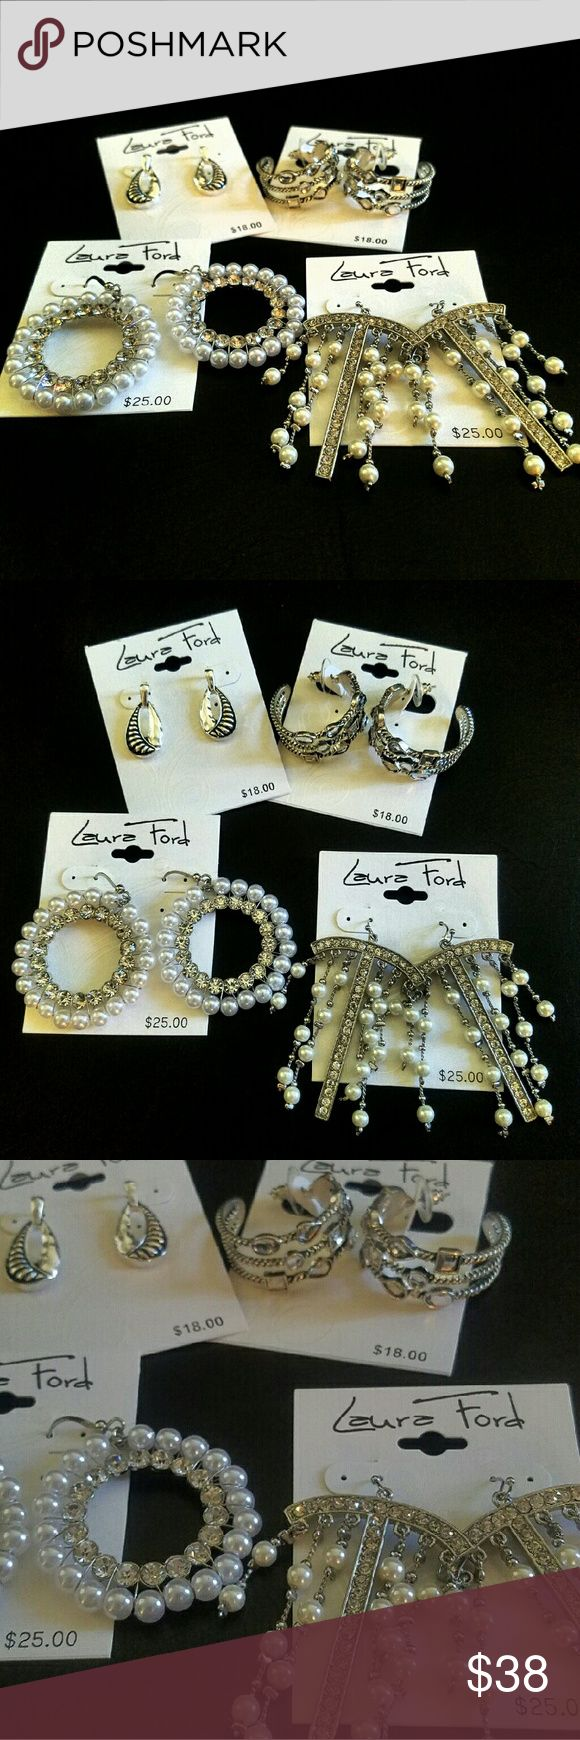 Laura Ford 4 PAIRS of earings bundle NWT Laura Ford 4 PAIRS of earings bundle NWT Would make a great holiday gift! Selling less than 10$ a pair!  ***let me know if you want to to bundle or seporate any specific items in my closet and I will make a new listing just for you! Feel free to make me an offer as well!    (#24) Laura Ford Jewelry